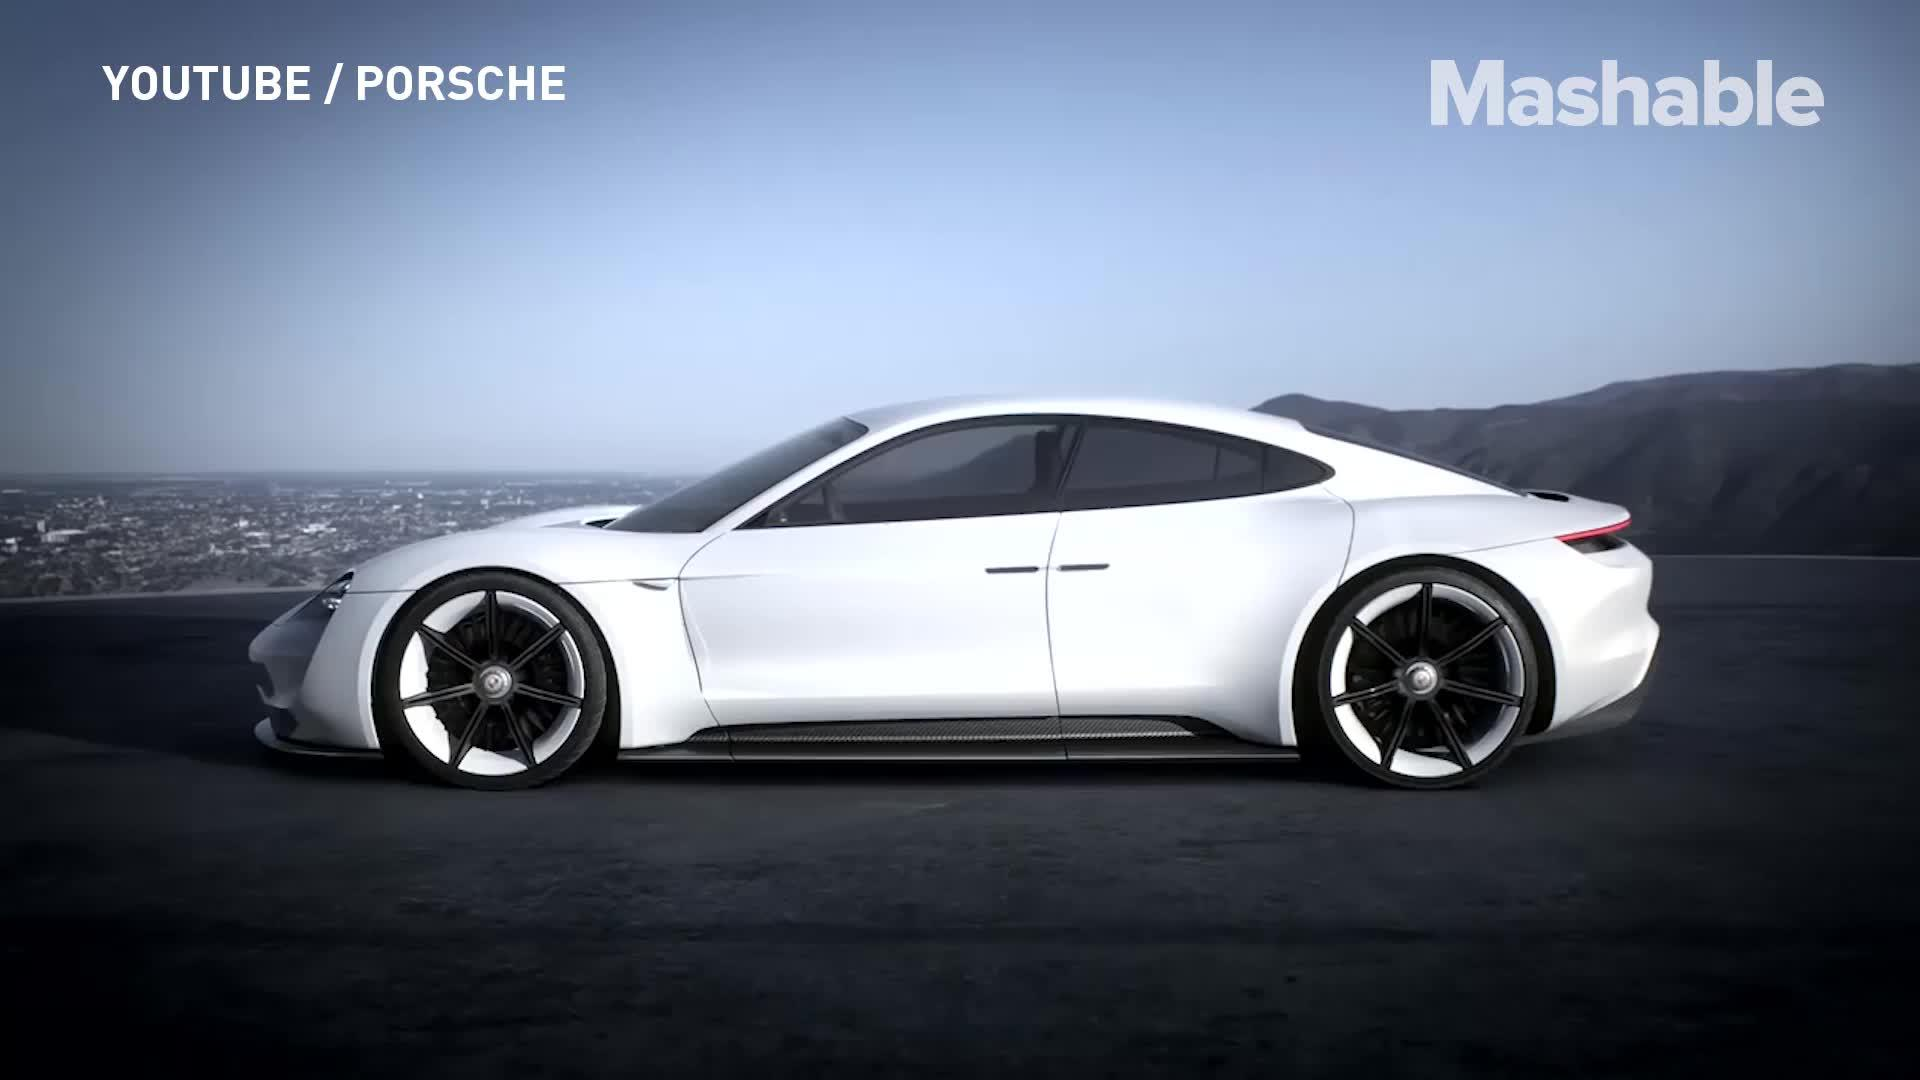 Porsche's electric car might just give Tesla a run for its money